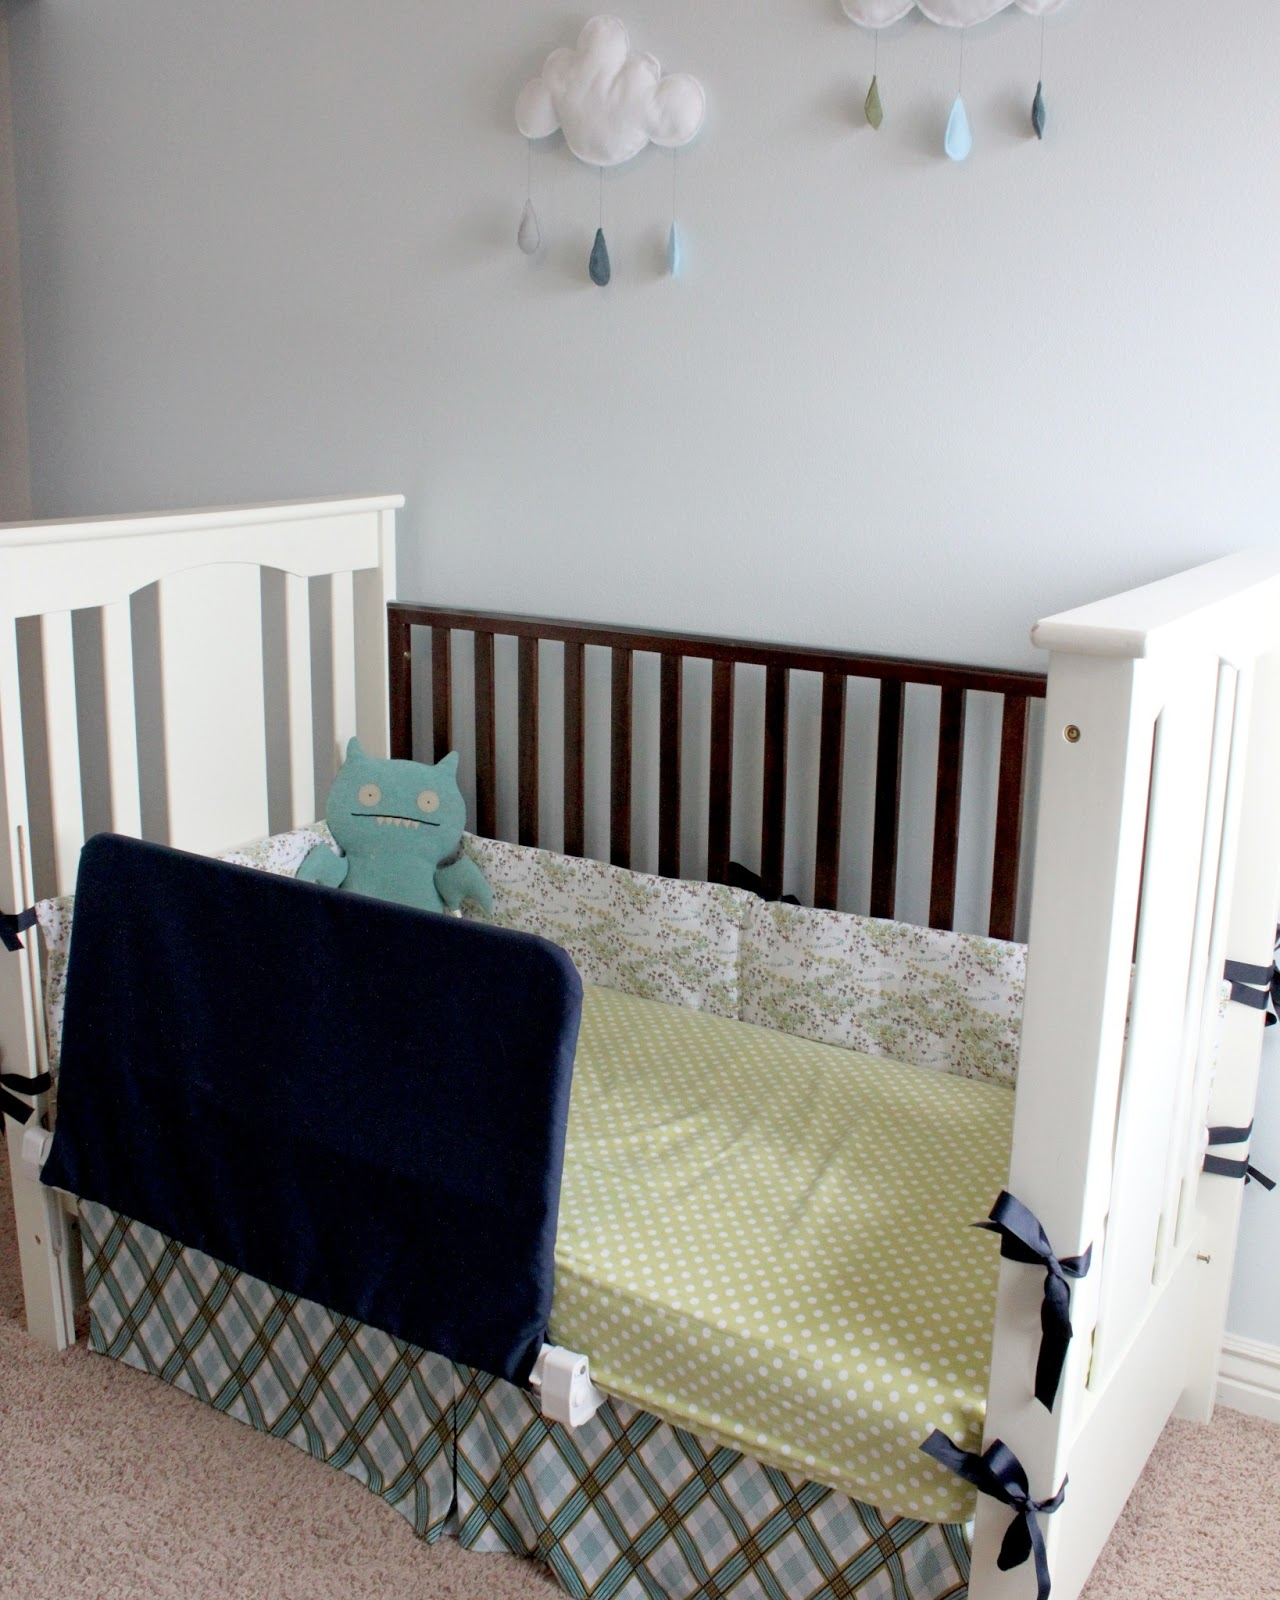 creatively christy: Improvising (DIY Bed Rail Cover)